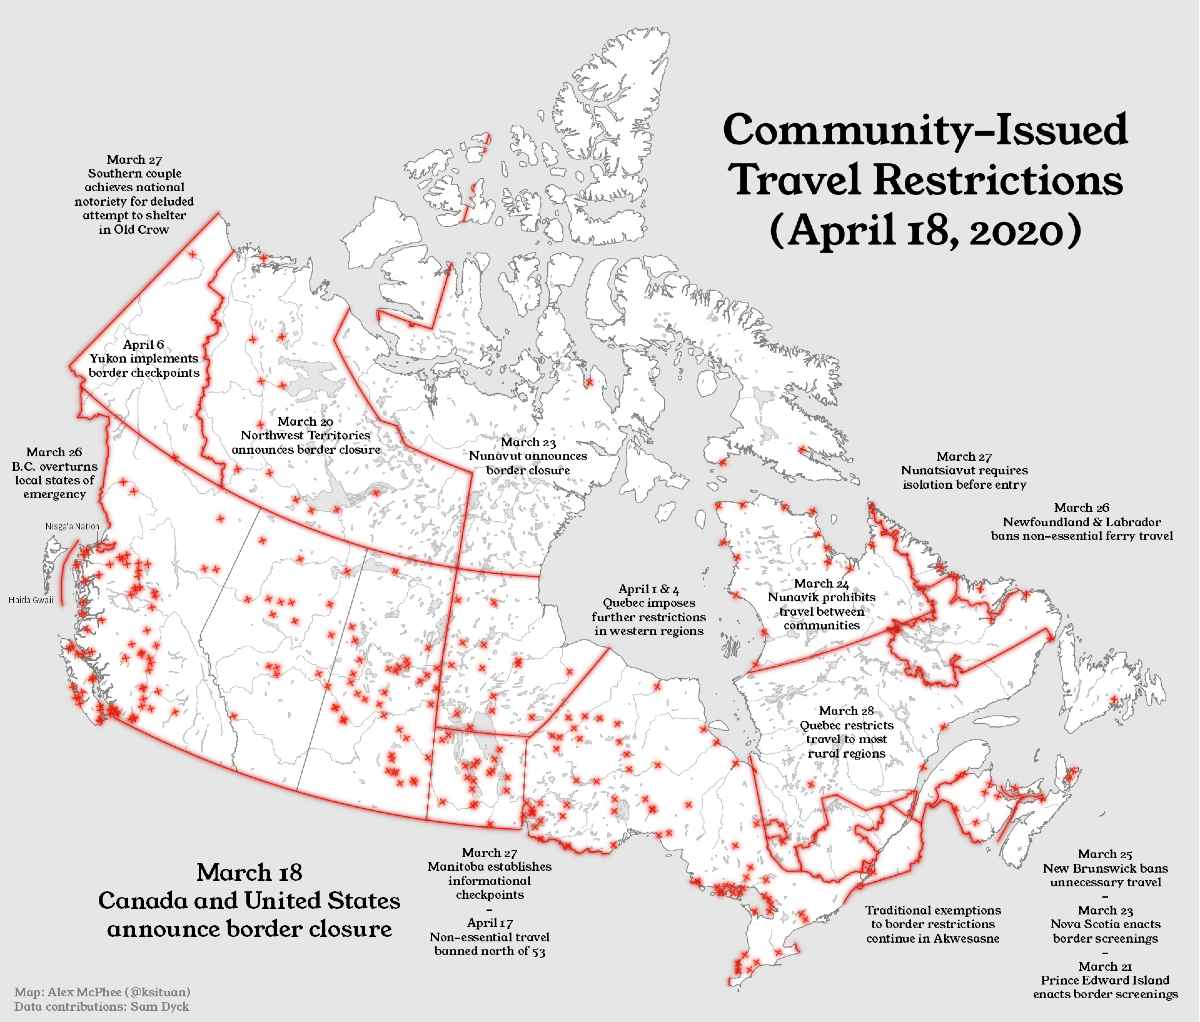 Student-generated map visualizes travel restrictions of COVID-19 in Northern Canada.